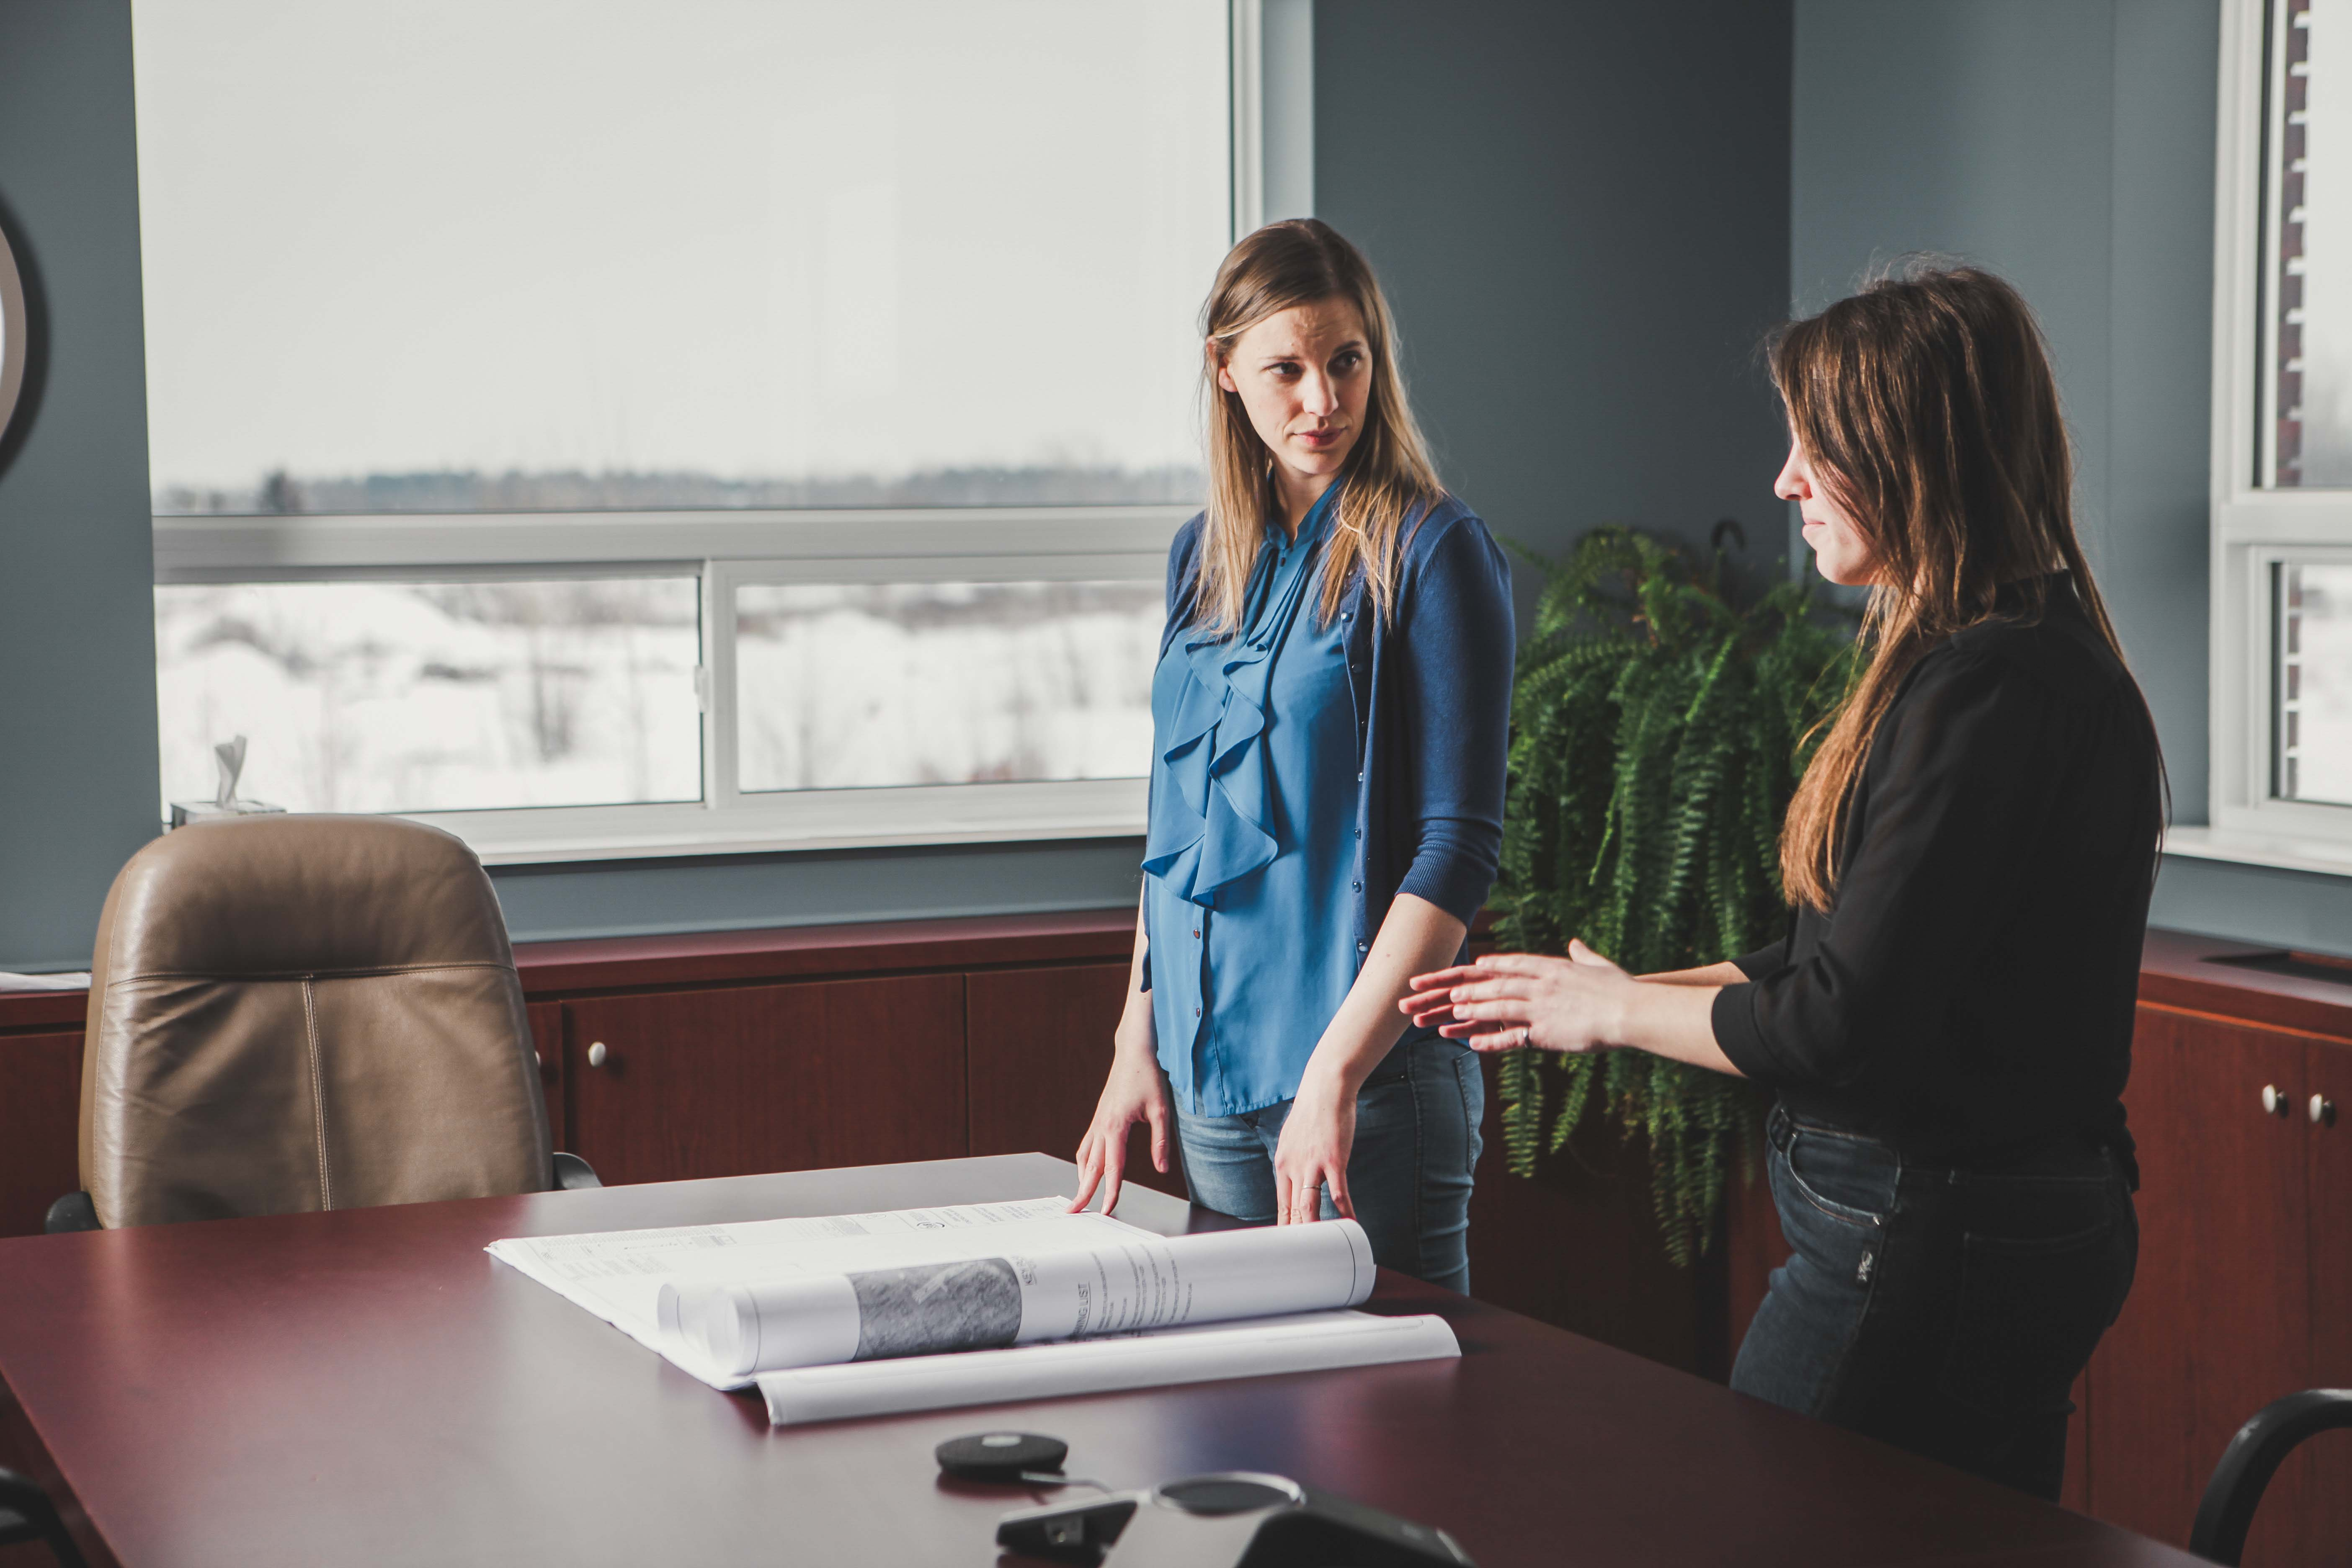 Two women discussing engineering plans